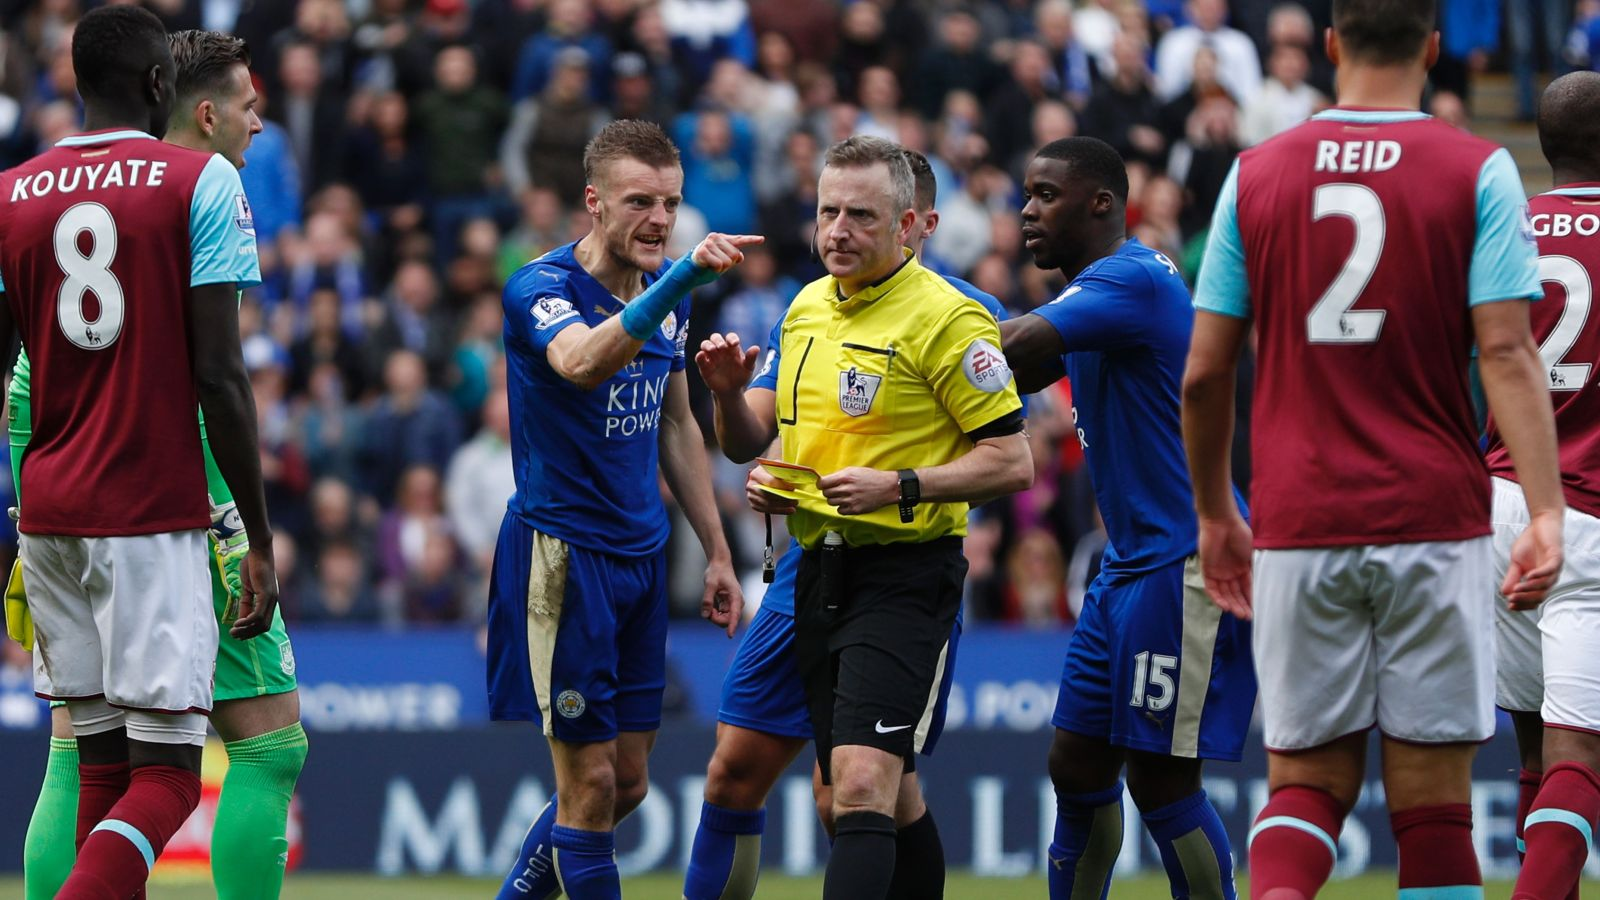 Pochettino says Vardy ban to have 'big impact' on Foxes' title tilt